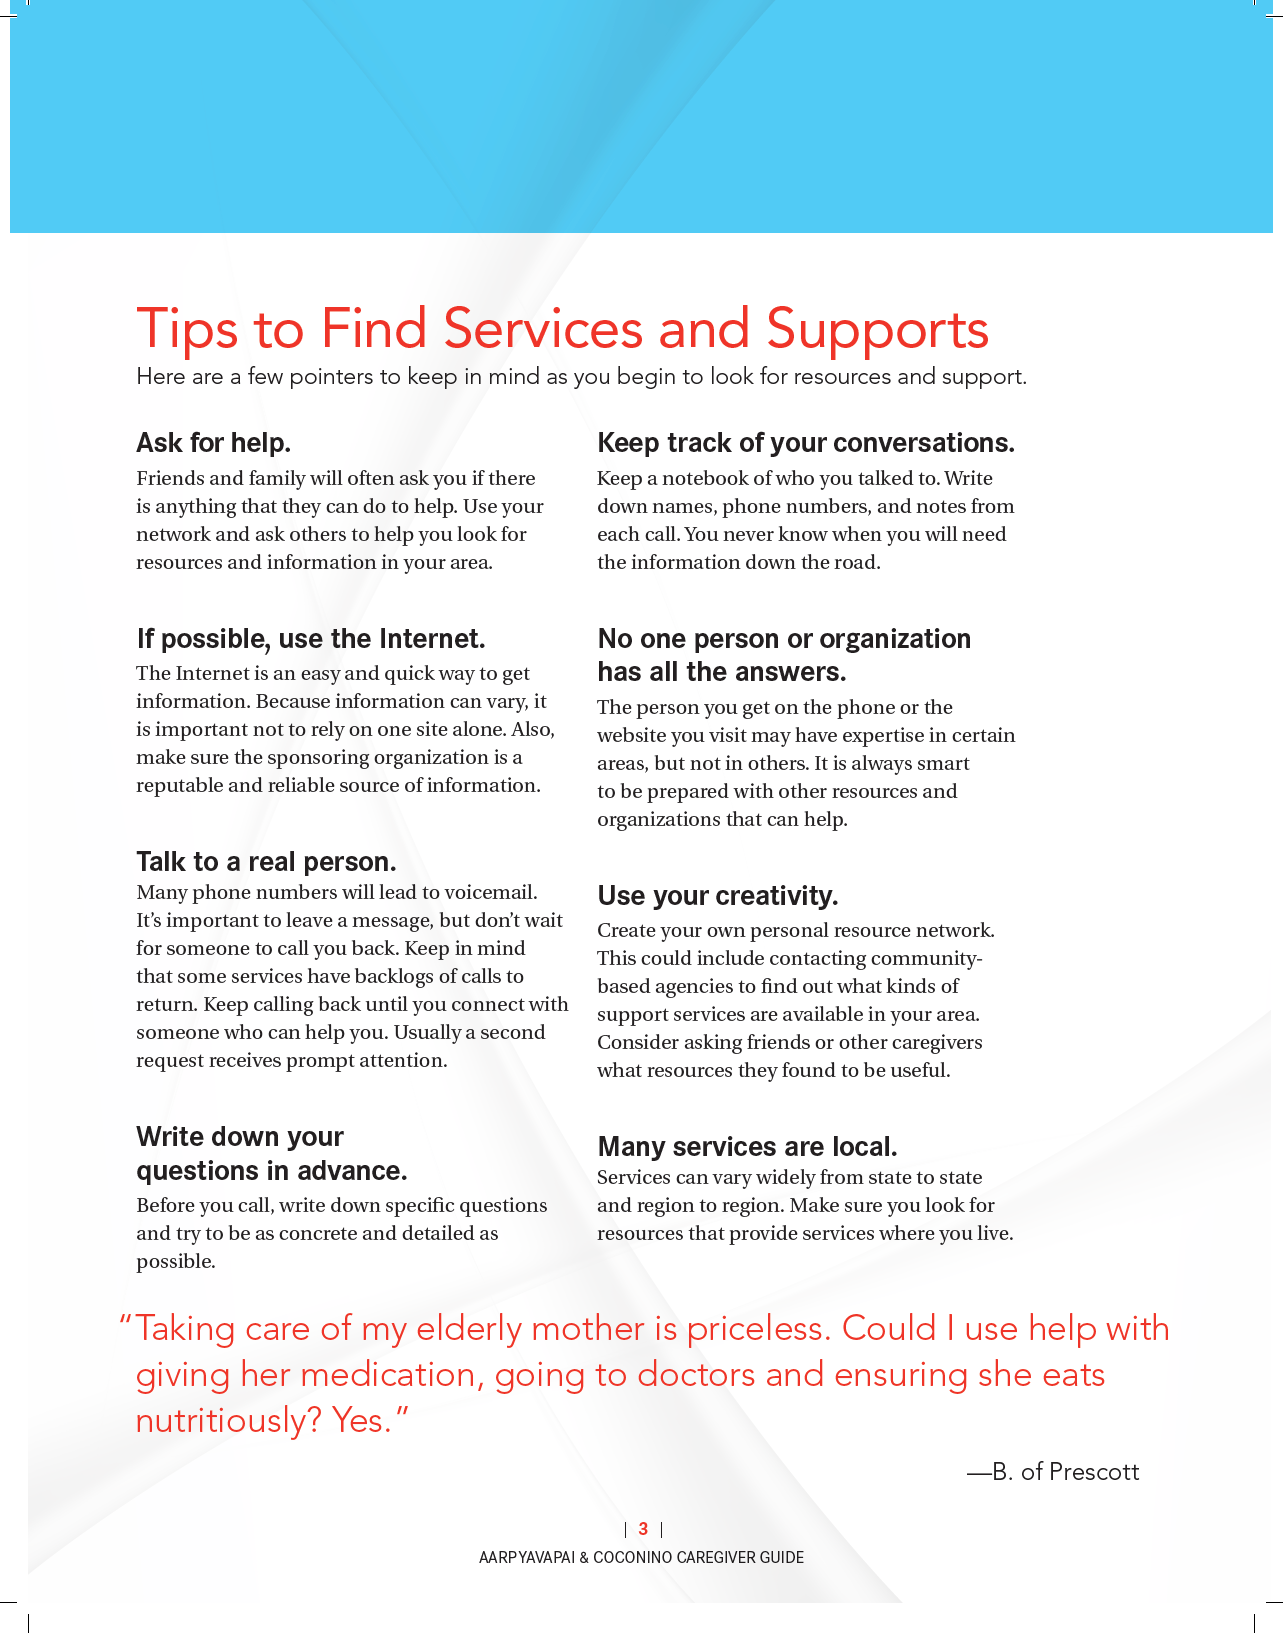 Caregiver Resource Guide Image 2.PNG